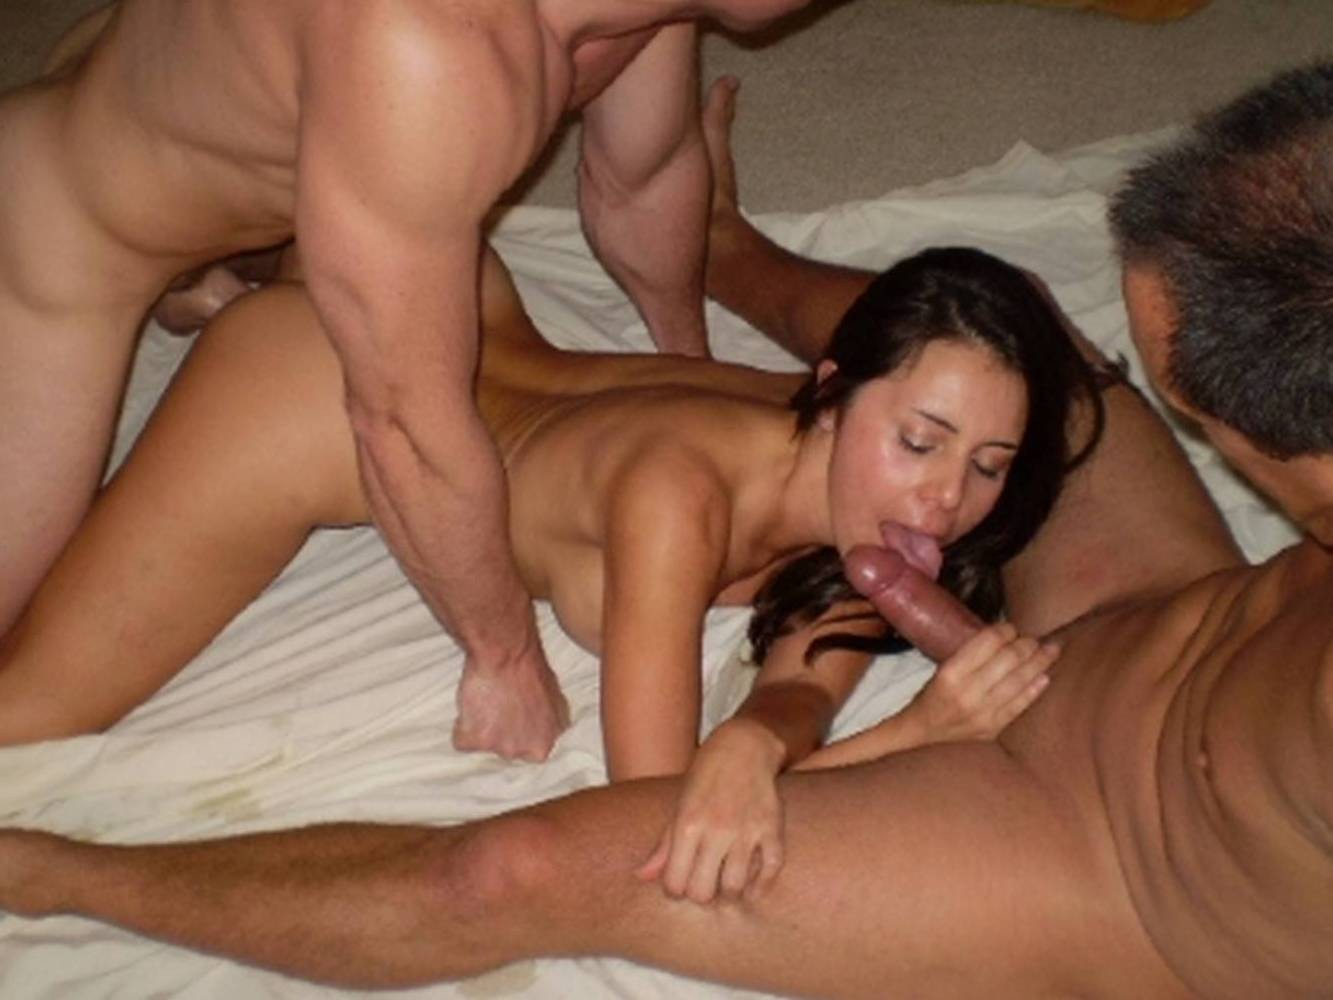 Real Threesome Wifes Friend